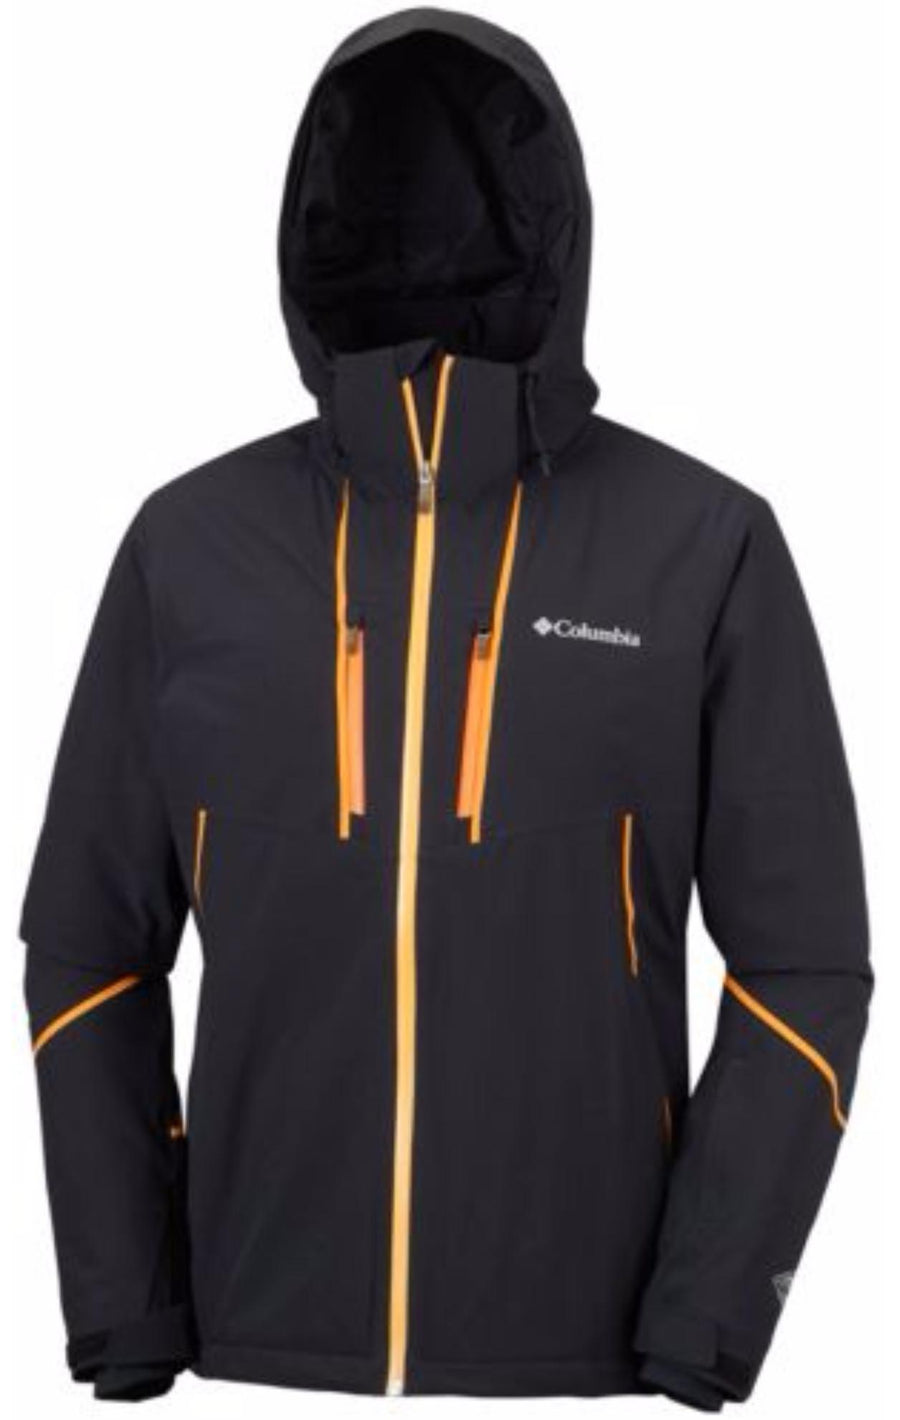 Herren Skijacke MILLENNIUM BLUR von Columbia in Schwarz / Orange-Men's Jacket-Columbia-Black-M / EU50-SkiGala